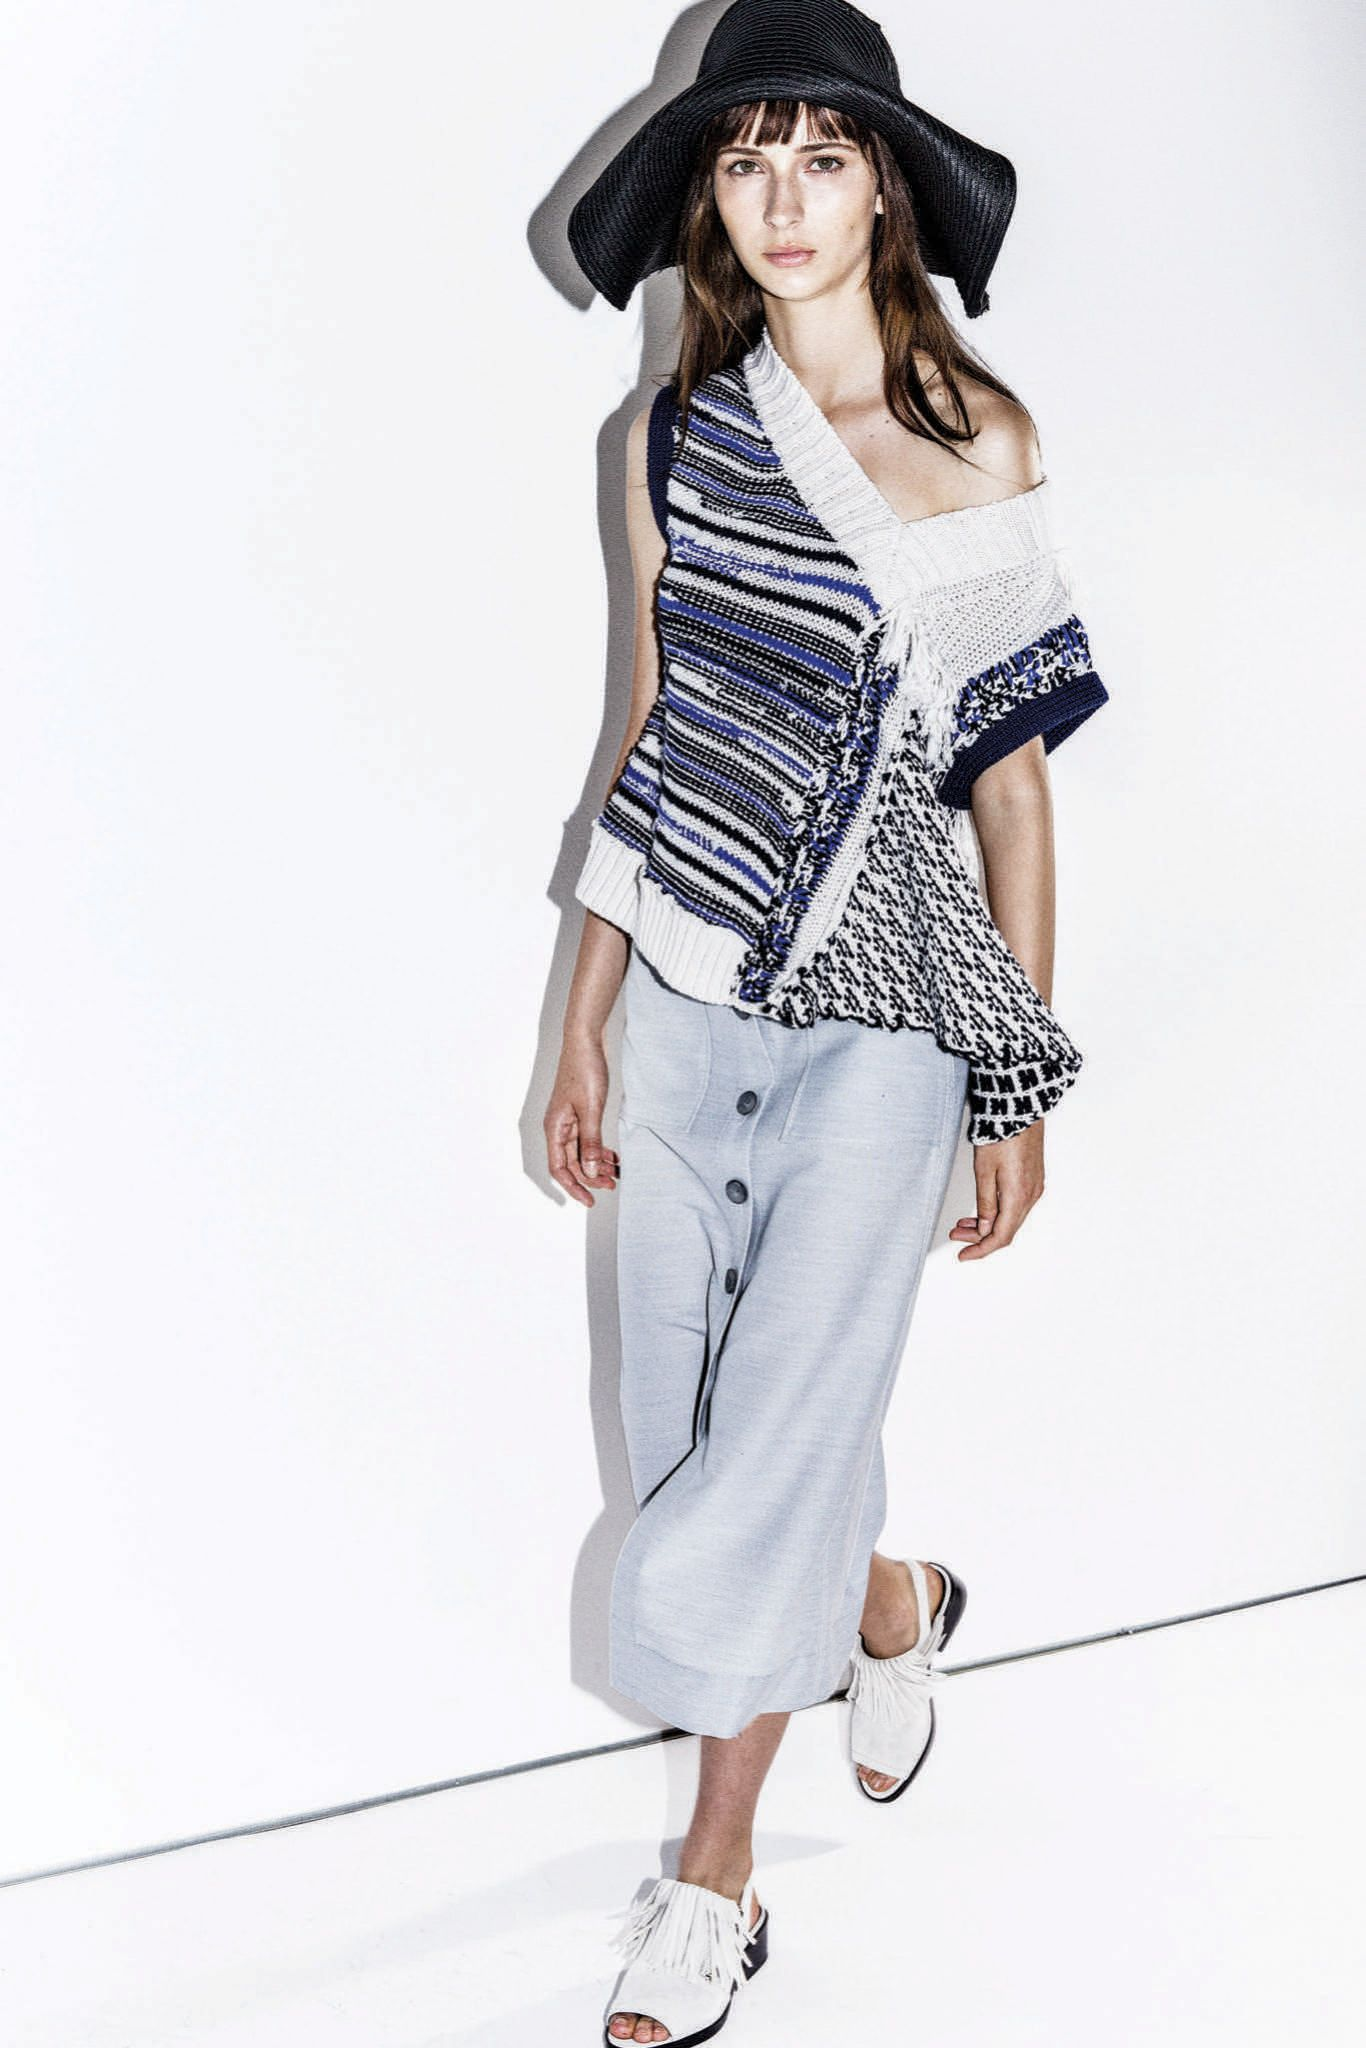 http://www.style.com/slideshows/fashion-shows/resort-2016/3-1-phillip-lim/collection/15